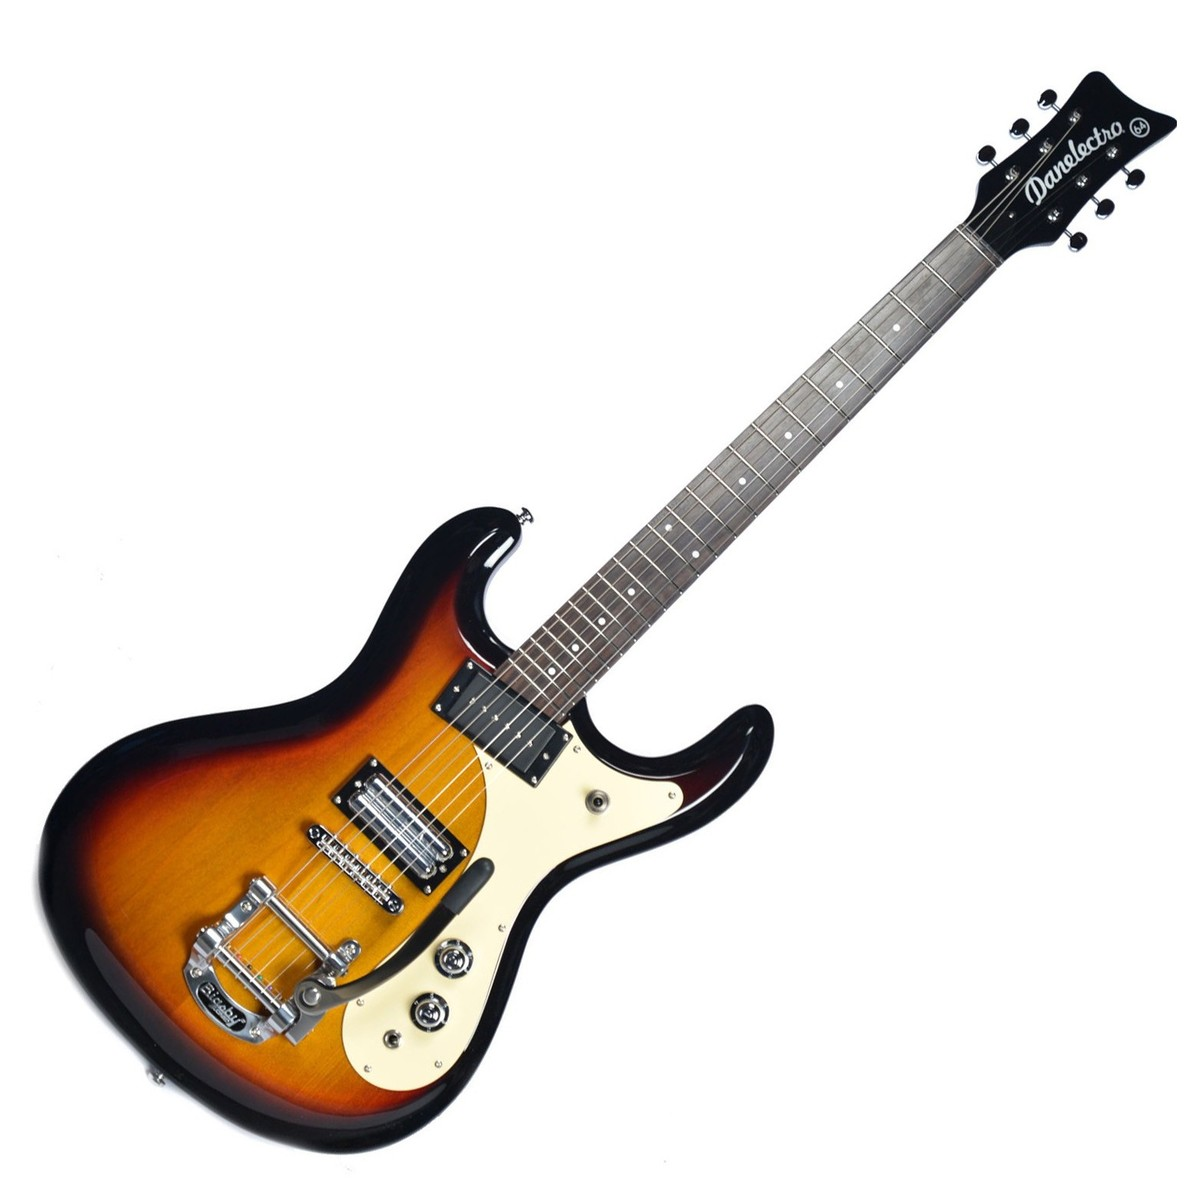 Danelectro 64 electric guitar 3 tone sunburst at gear4music for Luthier guitarra electrica